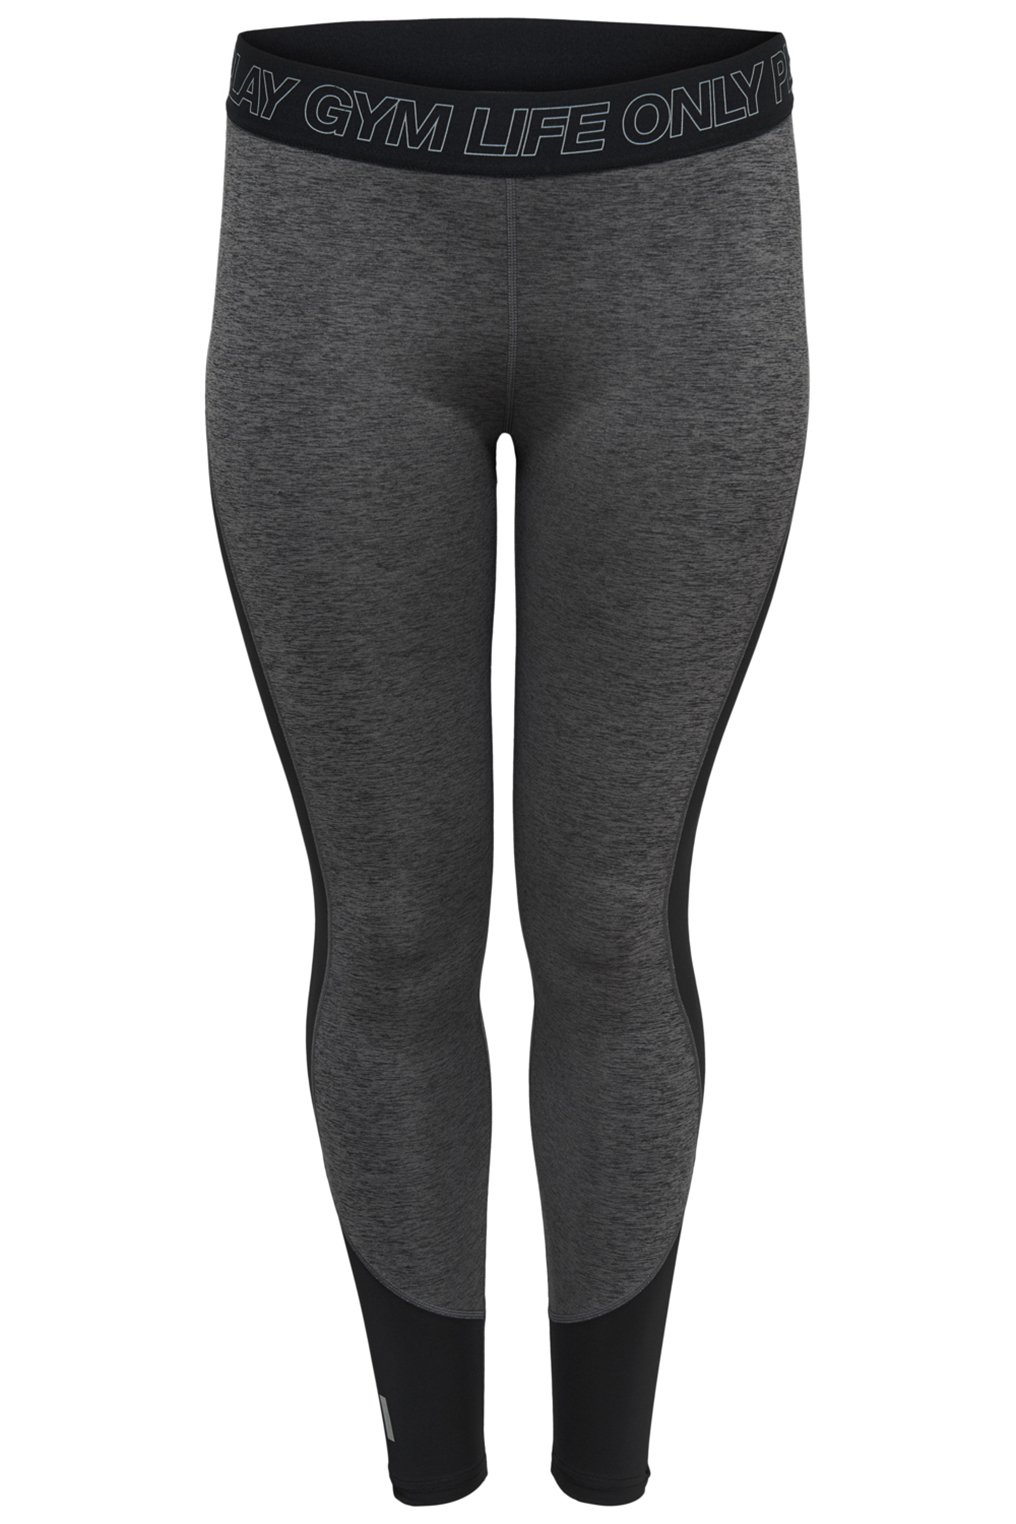 SportLegging JACEY ONLY Play sport